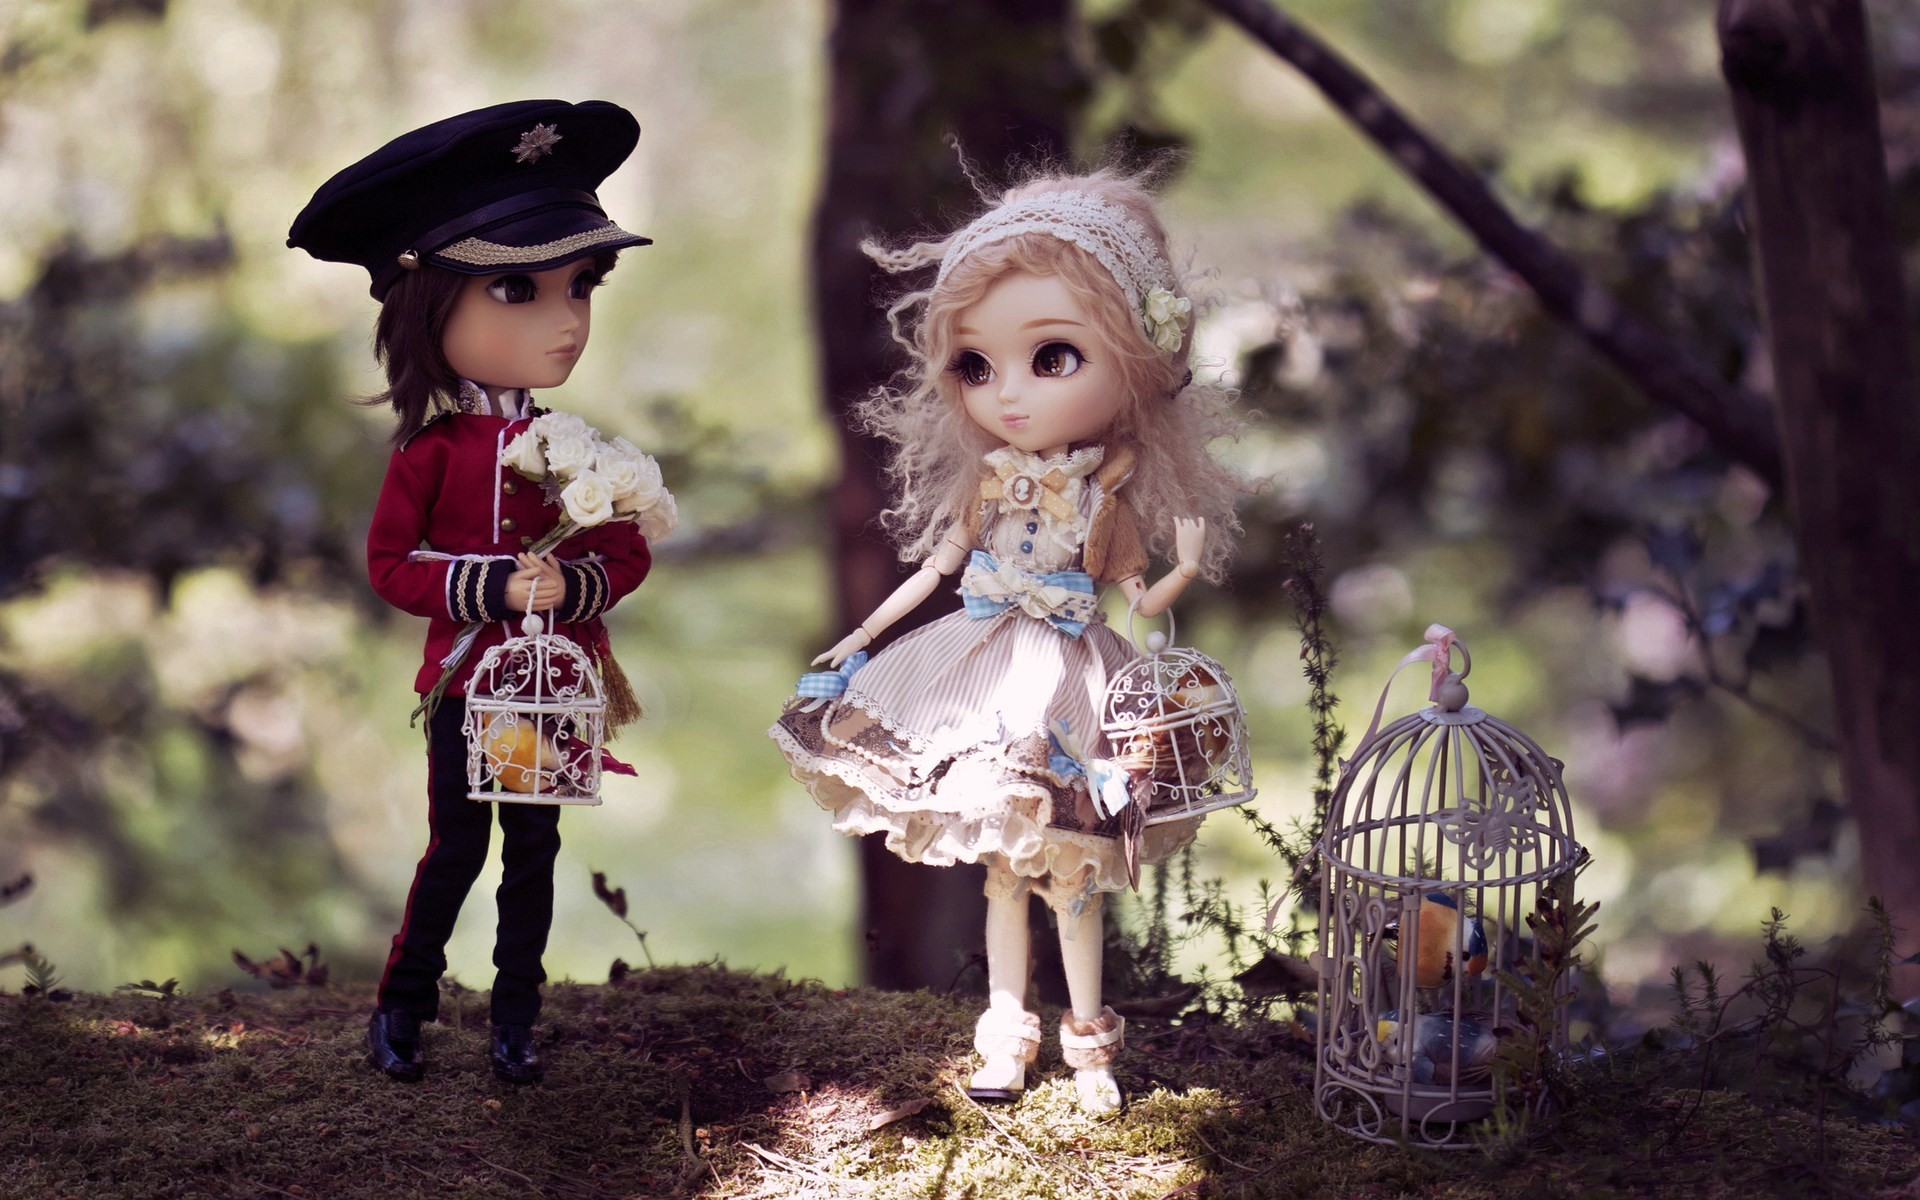 1920x1200 Hd Couple Dolls Images - Baby Dolls Ideas